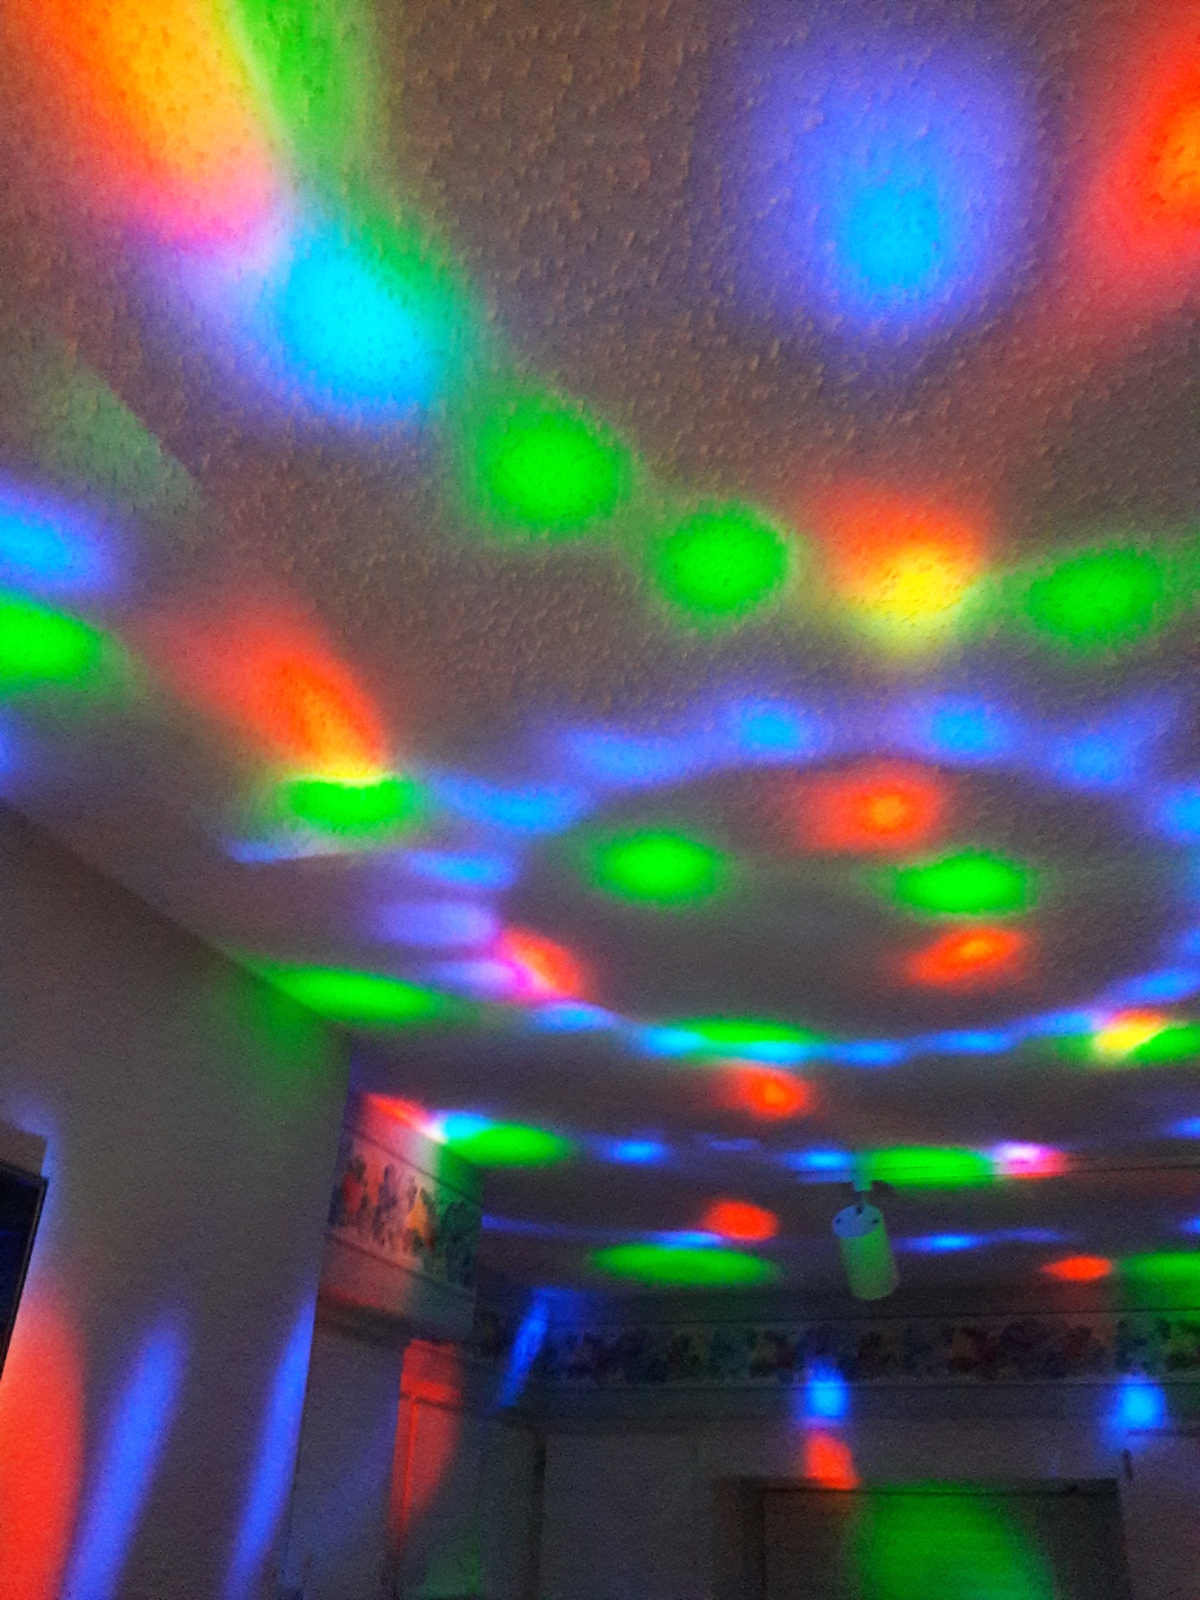 home lighting effects. Holidays, Home ProductsTagged #amazonreview, #Bar, #bloggerreview, #blogreview, #Club, #DanceNight, #DiscoBall, #forfree, #glowingreview, #goodbargain, Lighting Effects